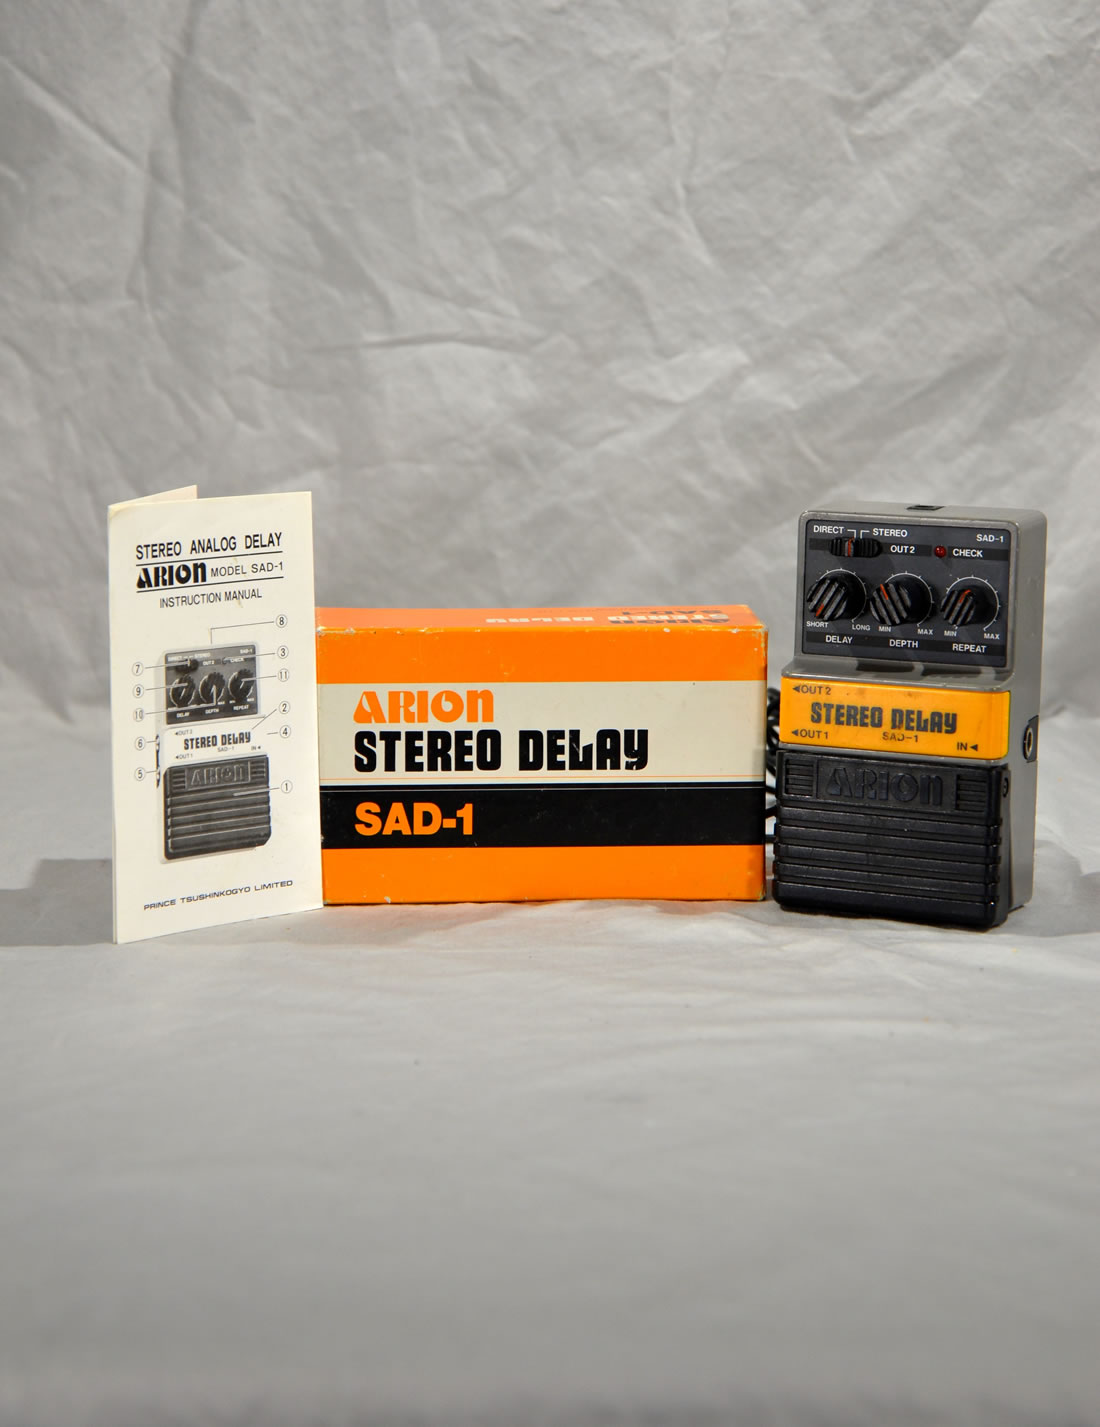 Arion Stereo Delay SAD-1